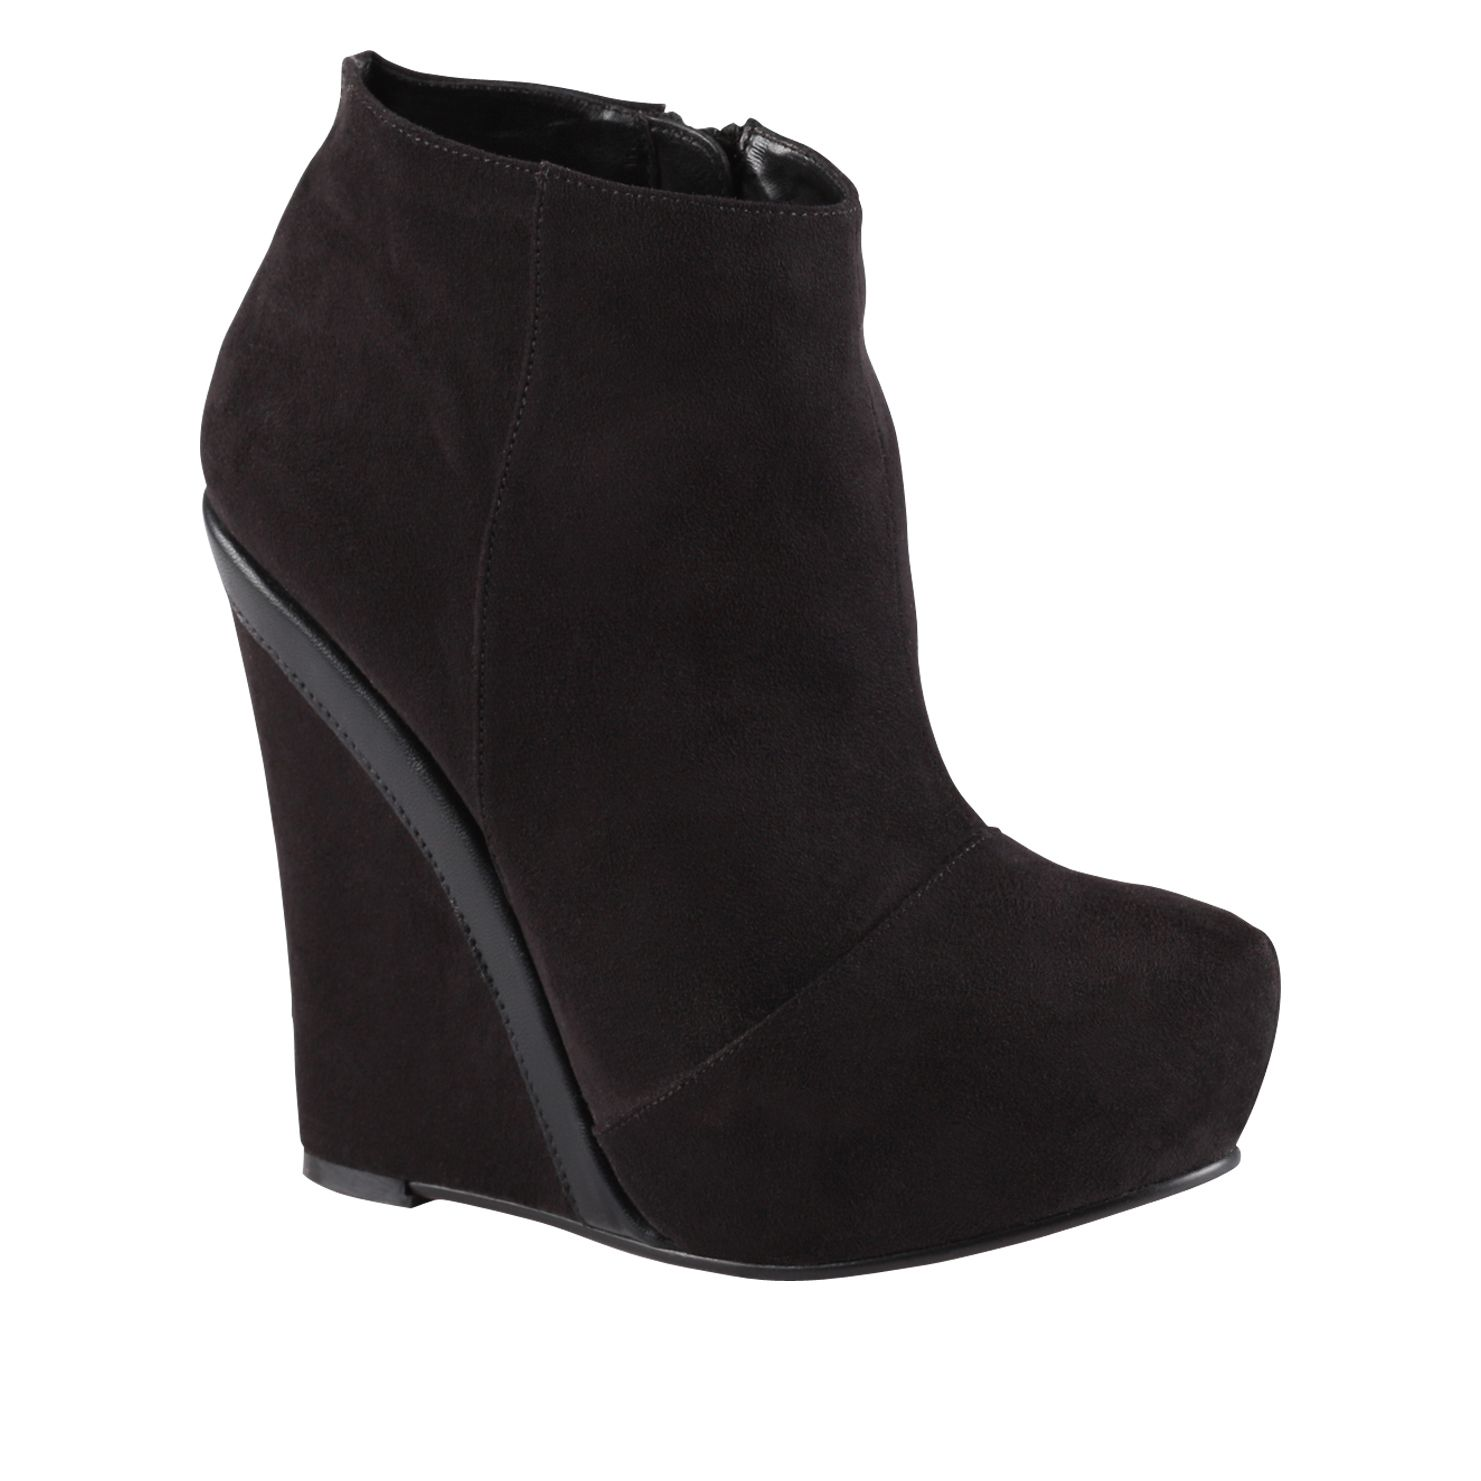 Flogolo almond toe wedge boots